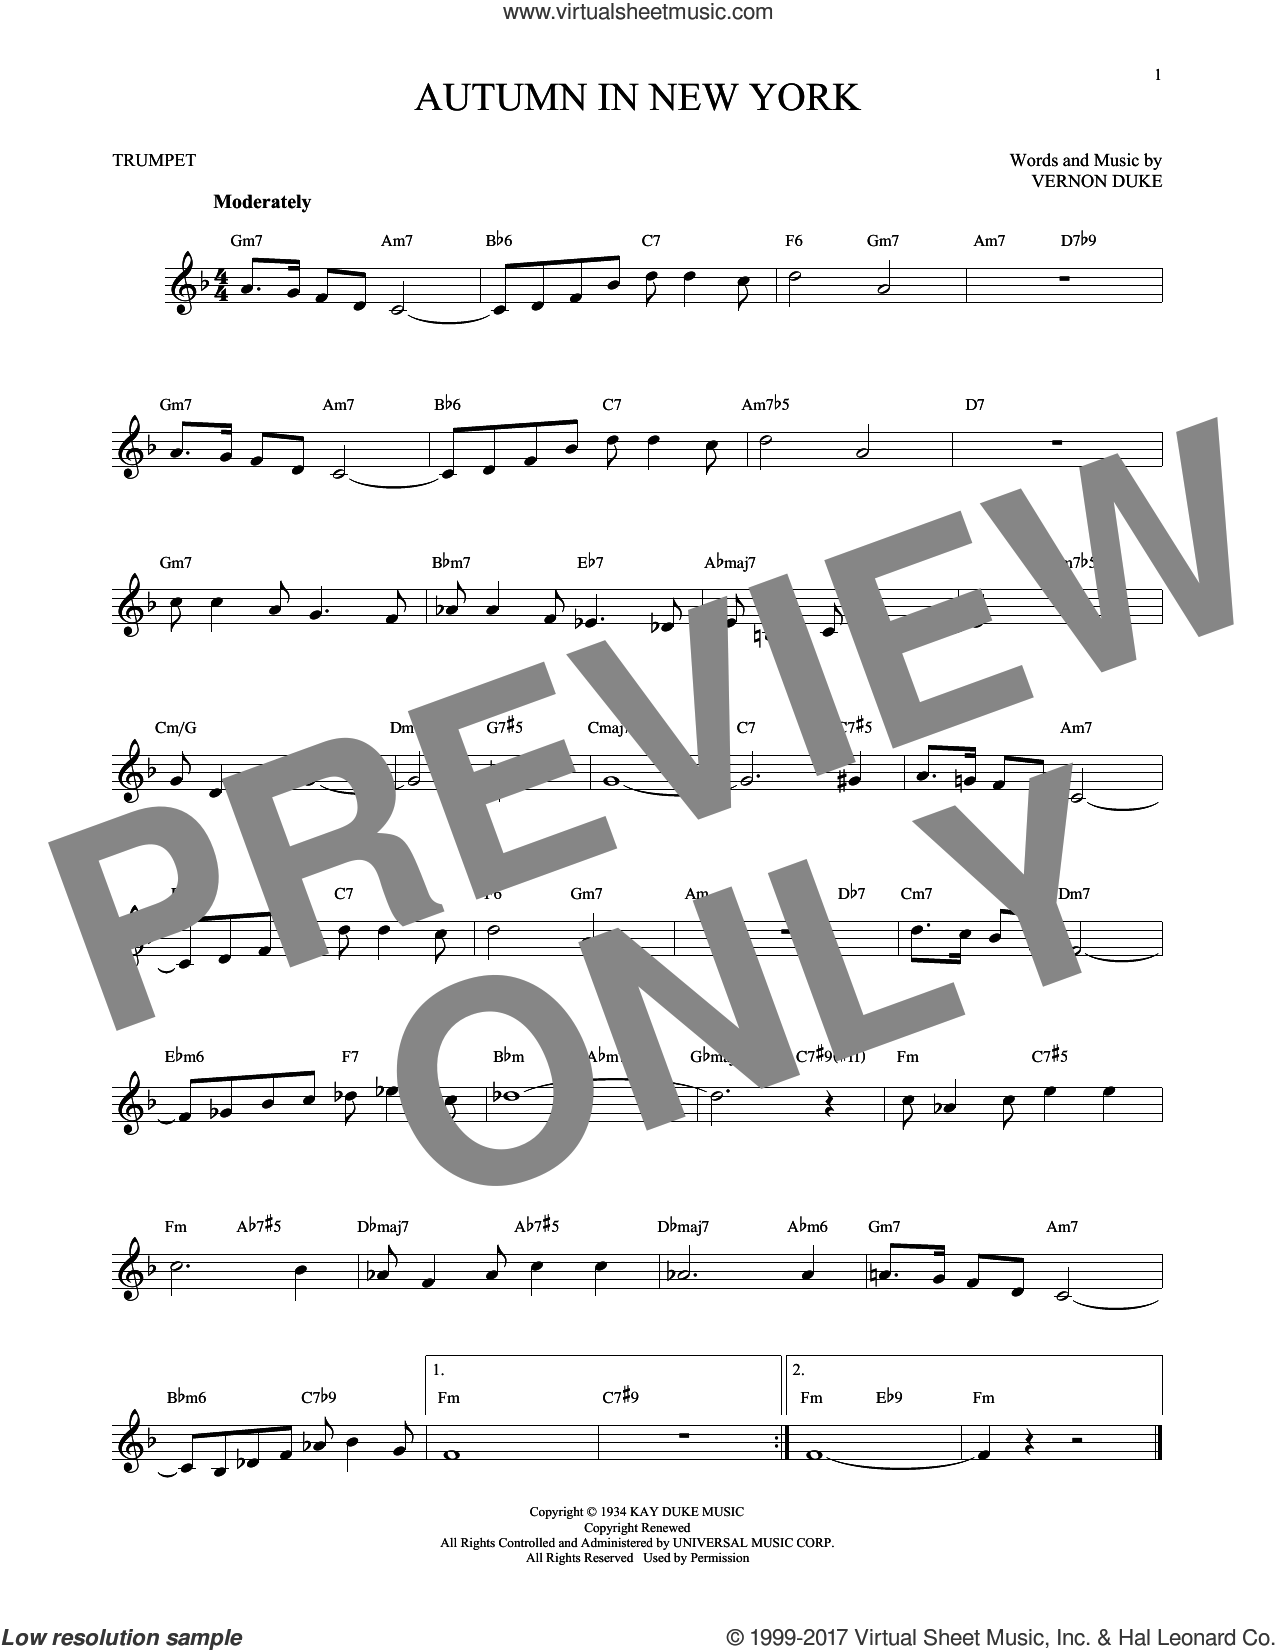 Autumn In New York sheet music for trumpet solo by Vernon Duke, Bud Powell and Jo Stafford, intermediate skill level